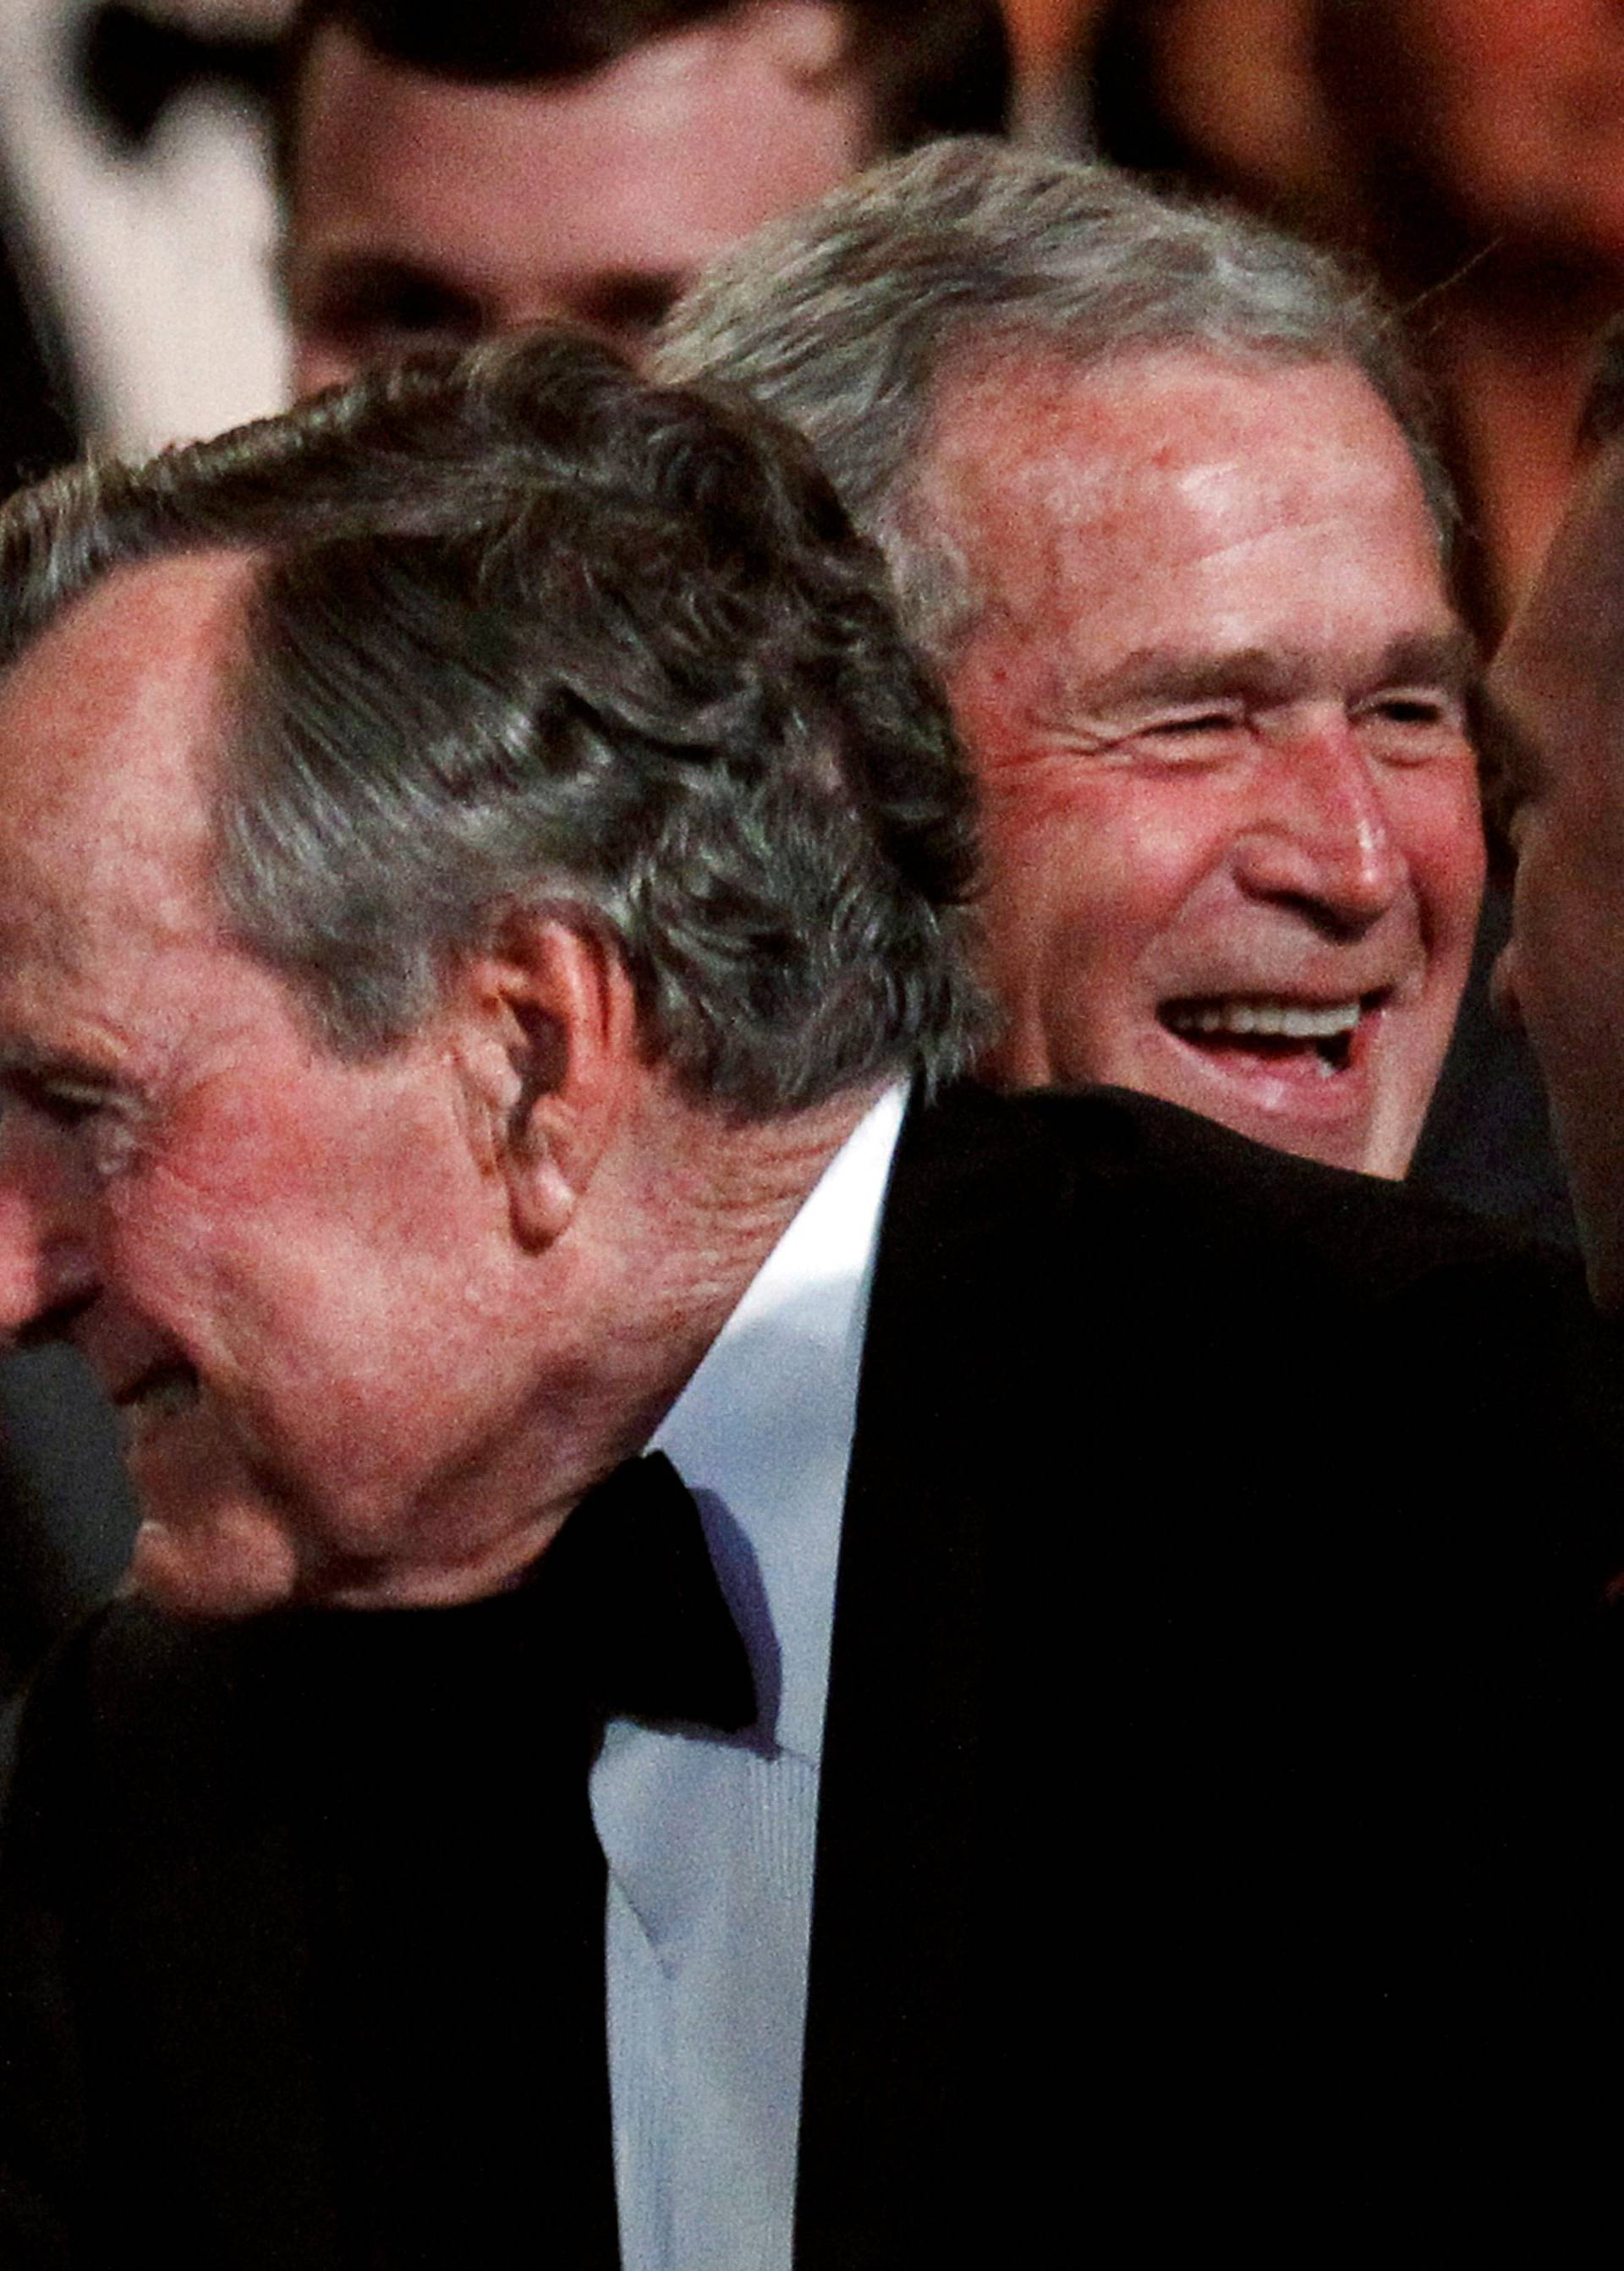 FILE PHOTO: Former U.S. President George. H.W. Bush (C) smiles at his wife Barbara (L), as their son former President George W. Bush (R) laughs in Washington